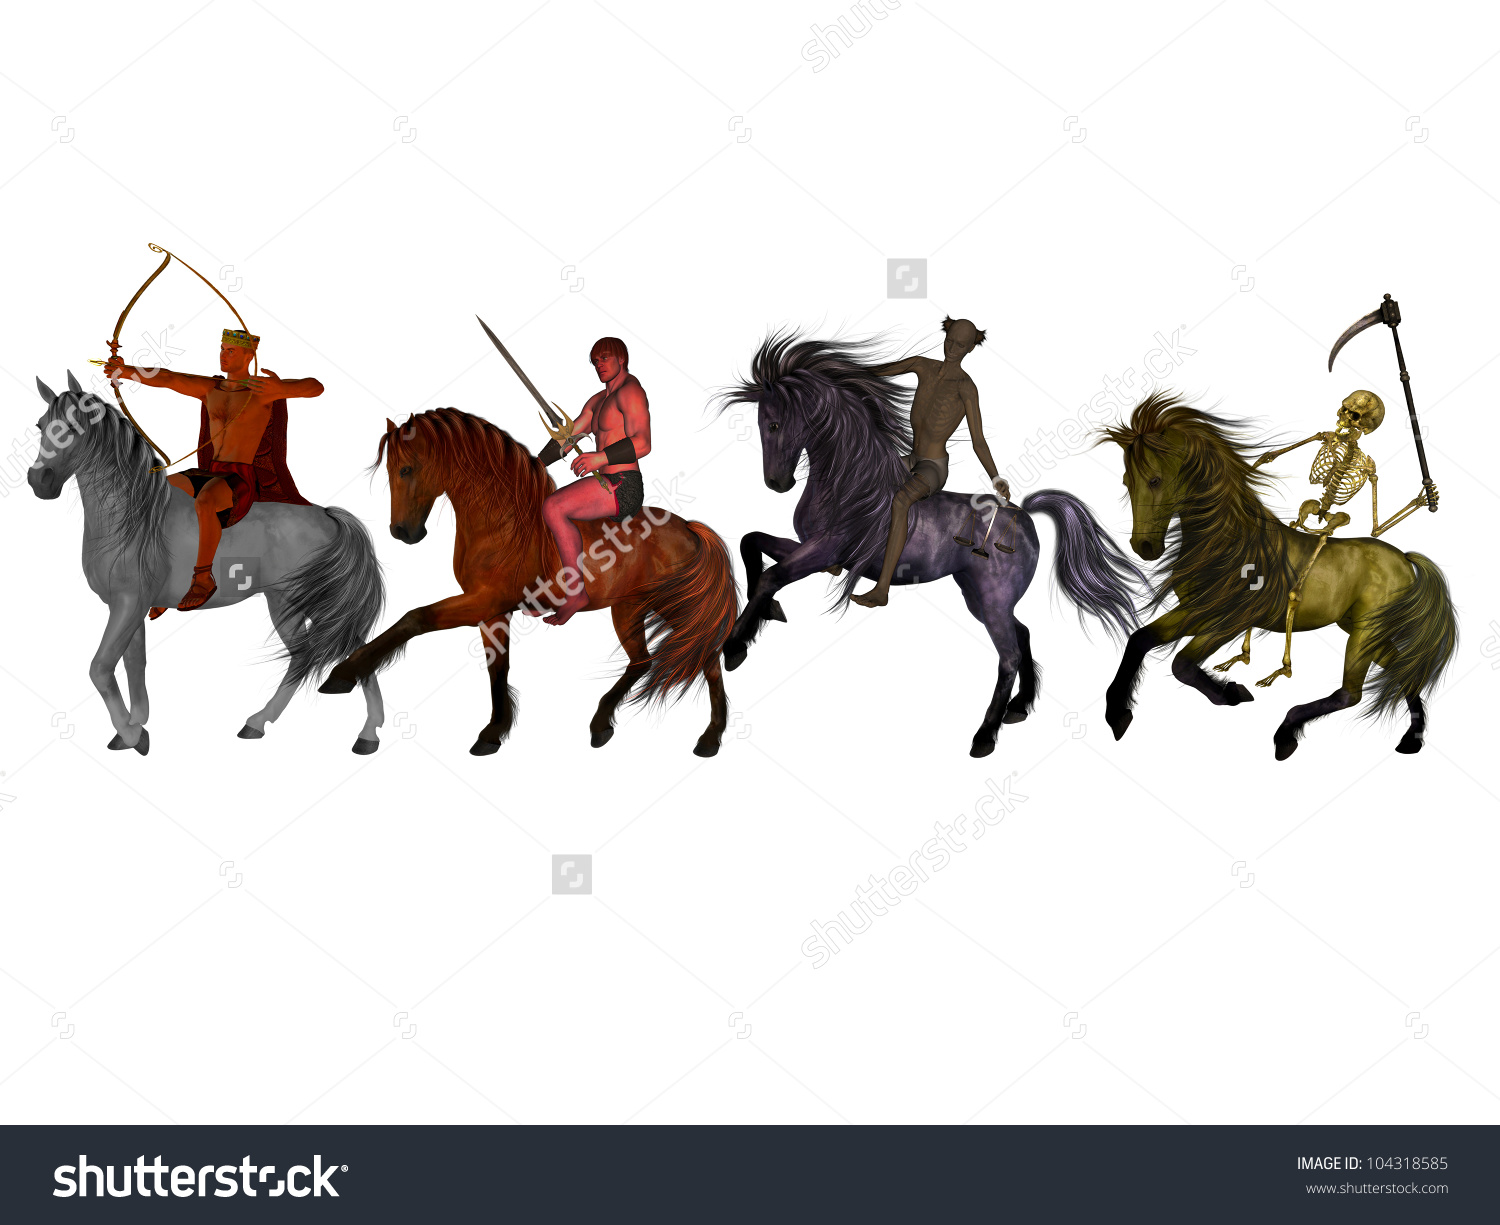 Four Horsemen Of The Apocalypse clipart #4, Download drawings